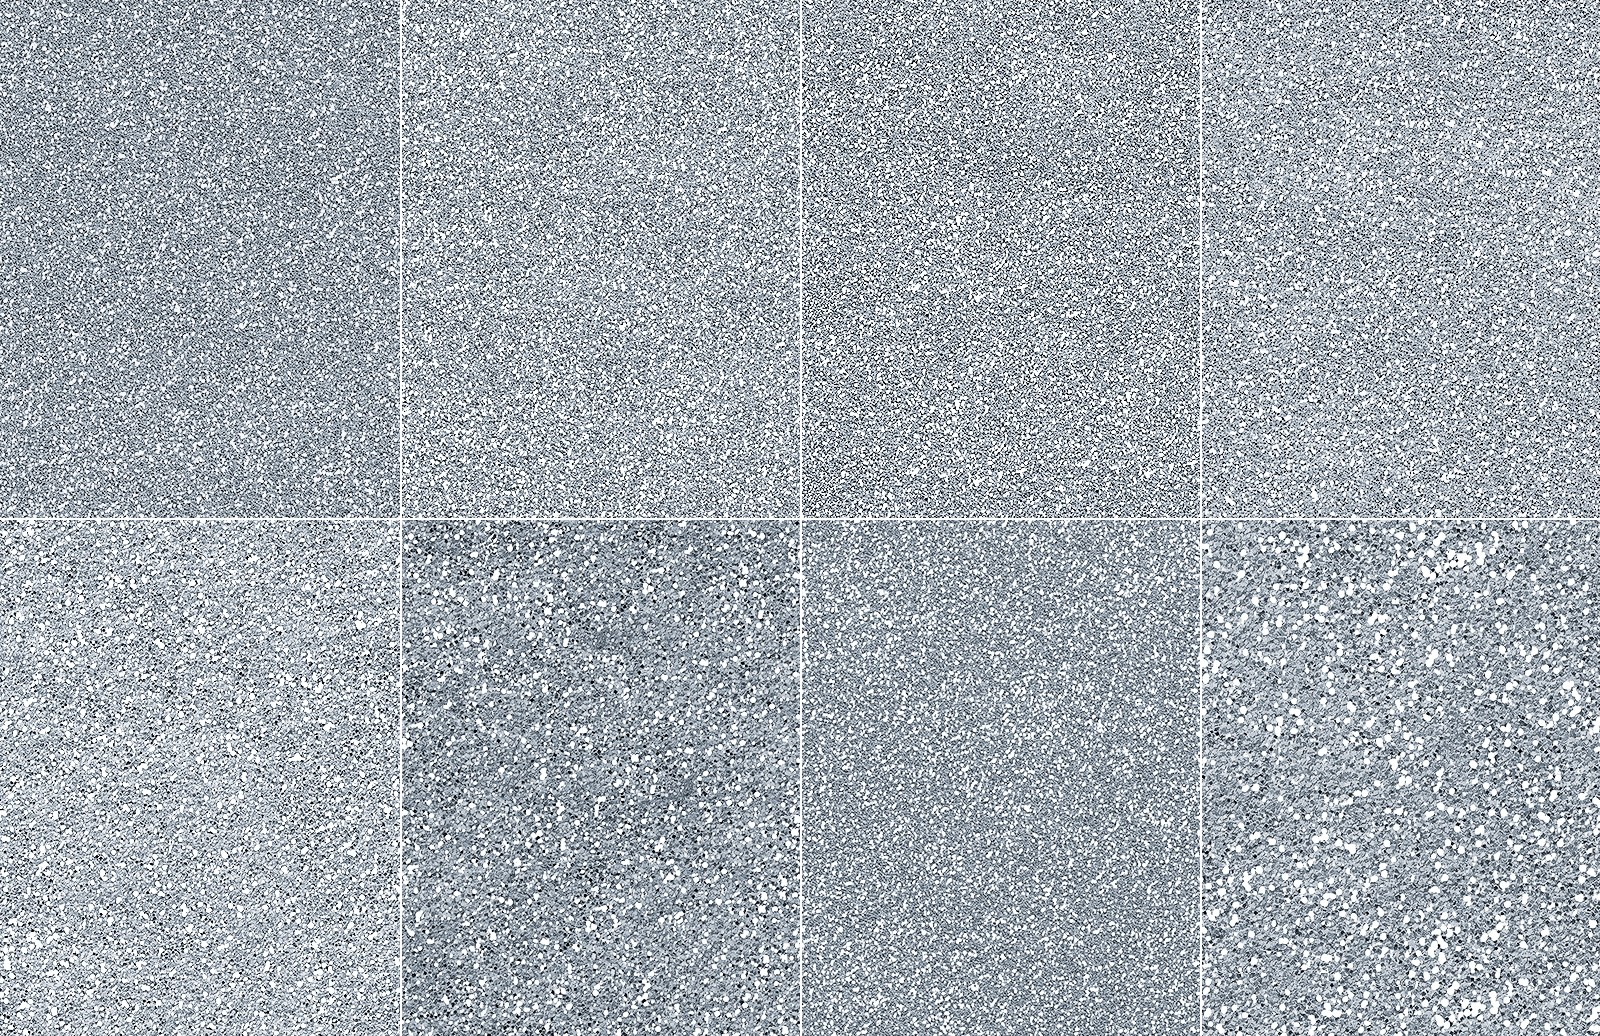 Seamless  Glitter  Textures  Preview 4